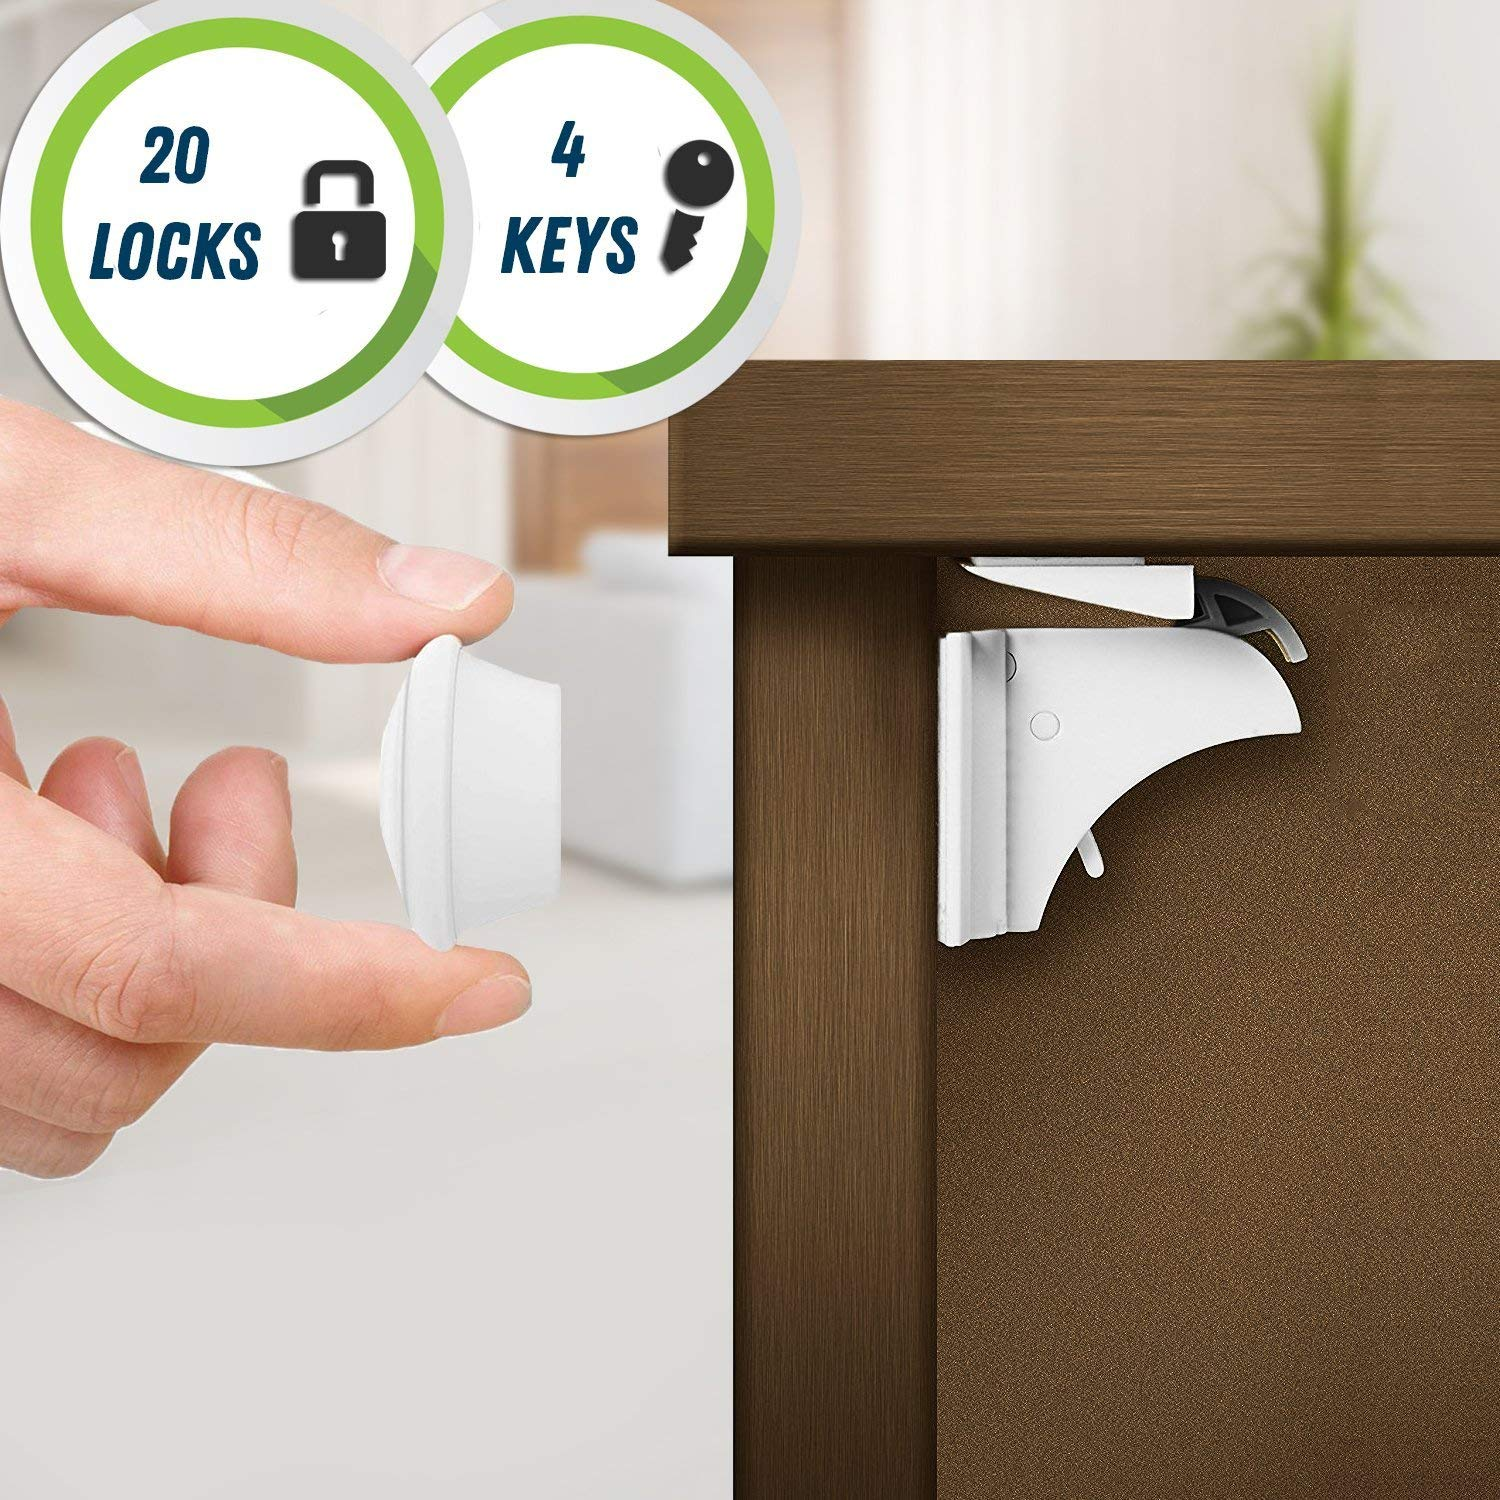 Matana Magnetic Safety Lock for Cupboard and Draws - Child and Baby Proof (20 Locks 4 Keys) by Matana